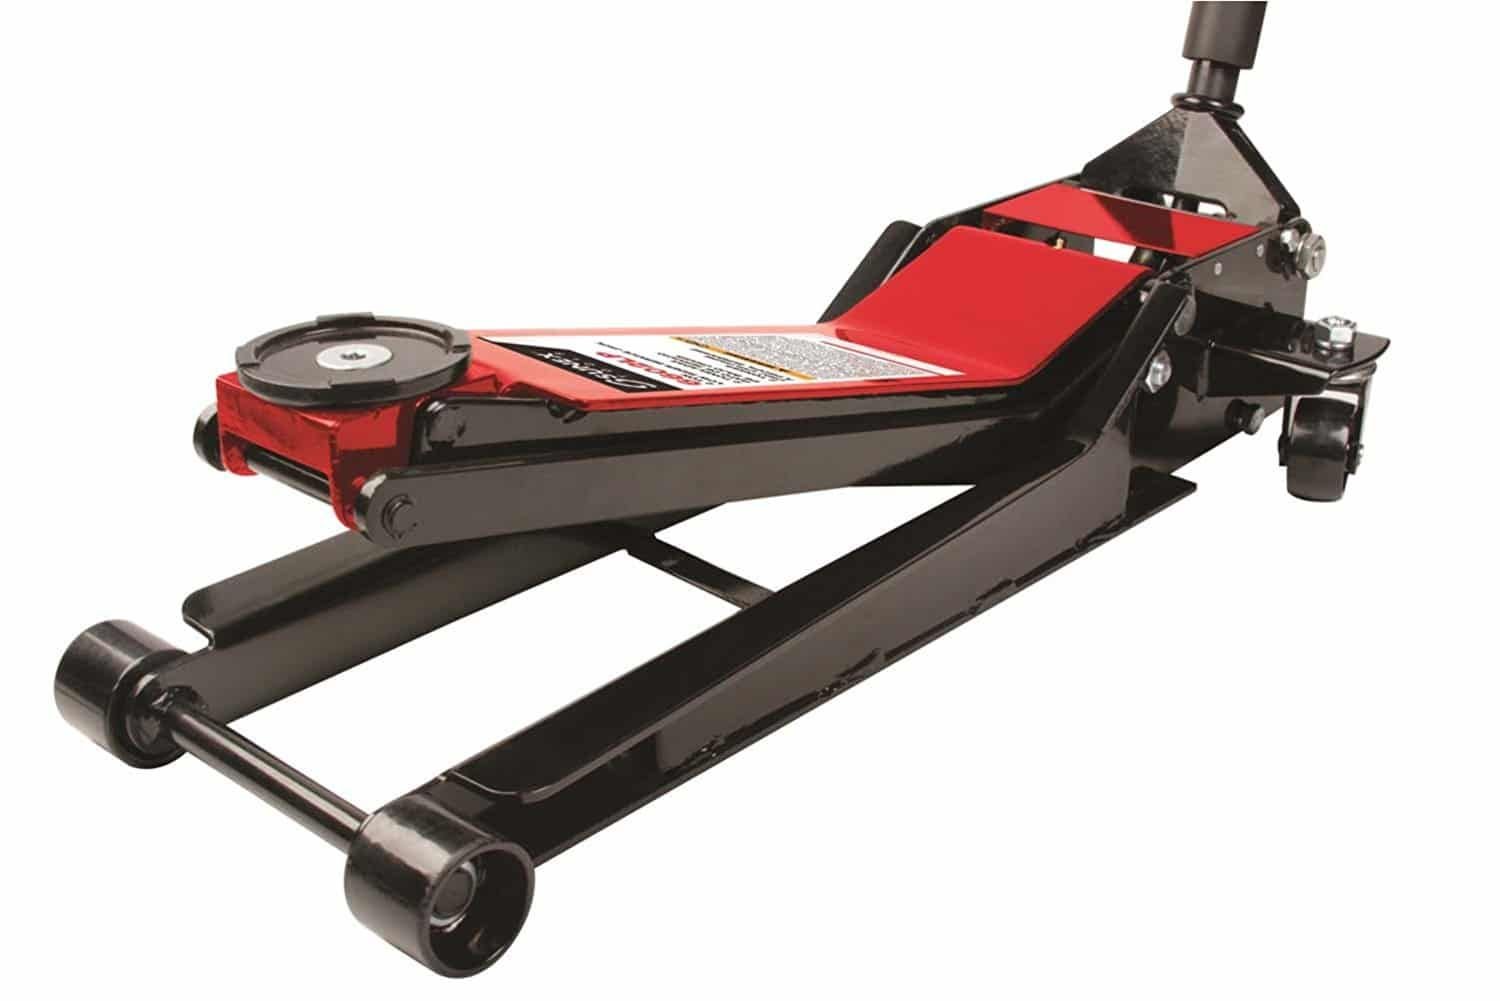 Top 10 Best Automotive Floor Jacks in 2020 Car jack